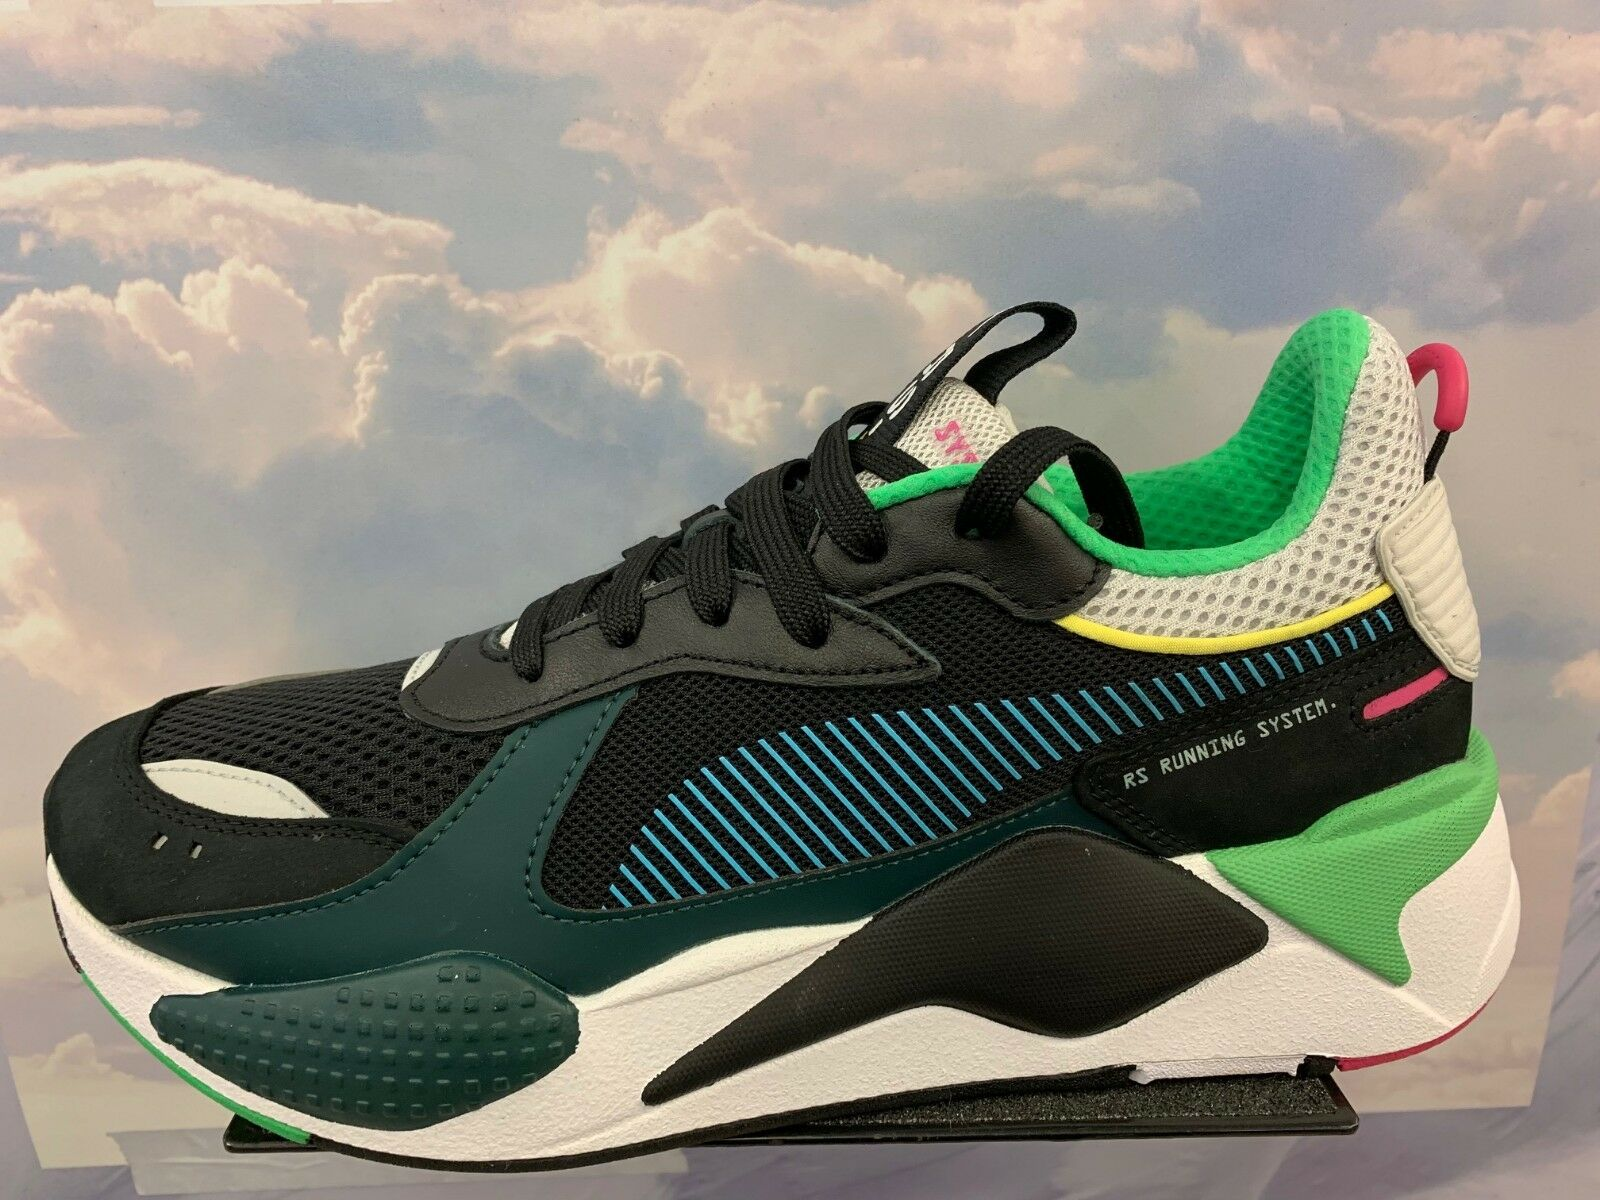 Puma RS-X Toys Reinvention Running System System System nero bianca verde Sz 4Y-13 369449_01 f2c1eb